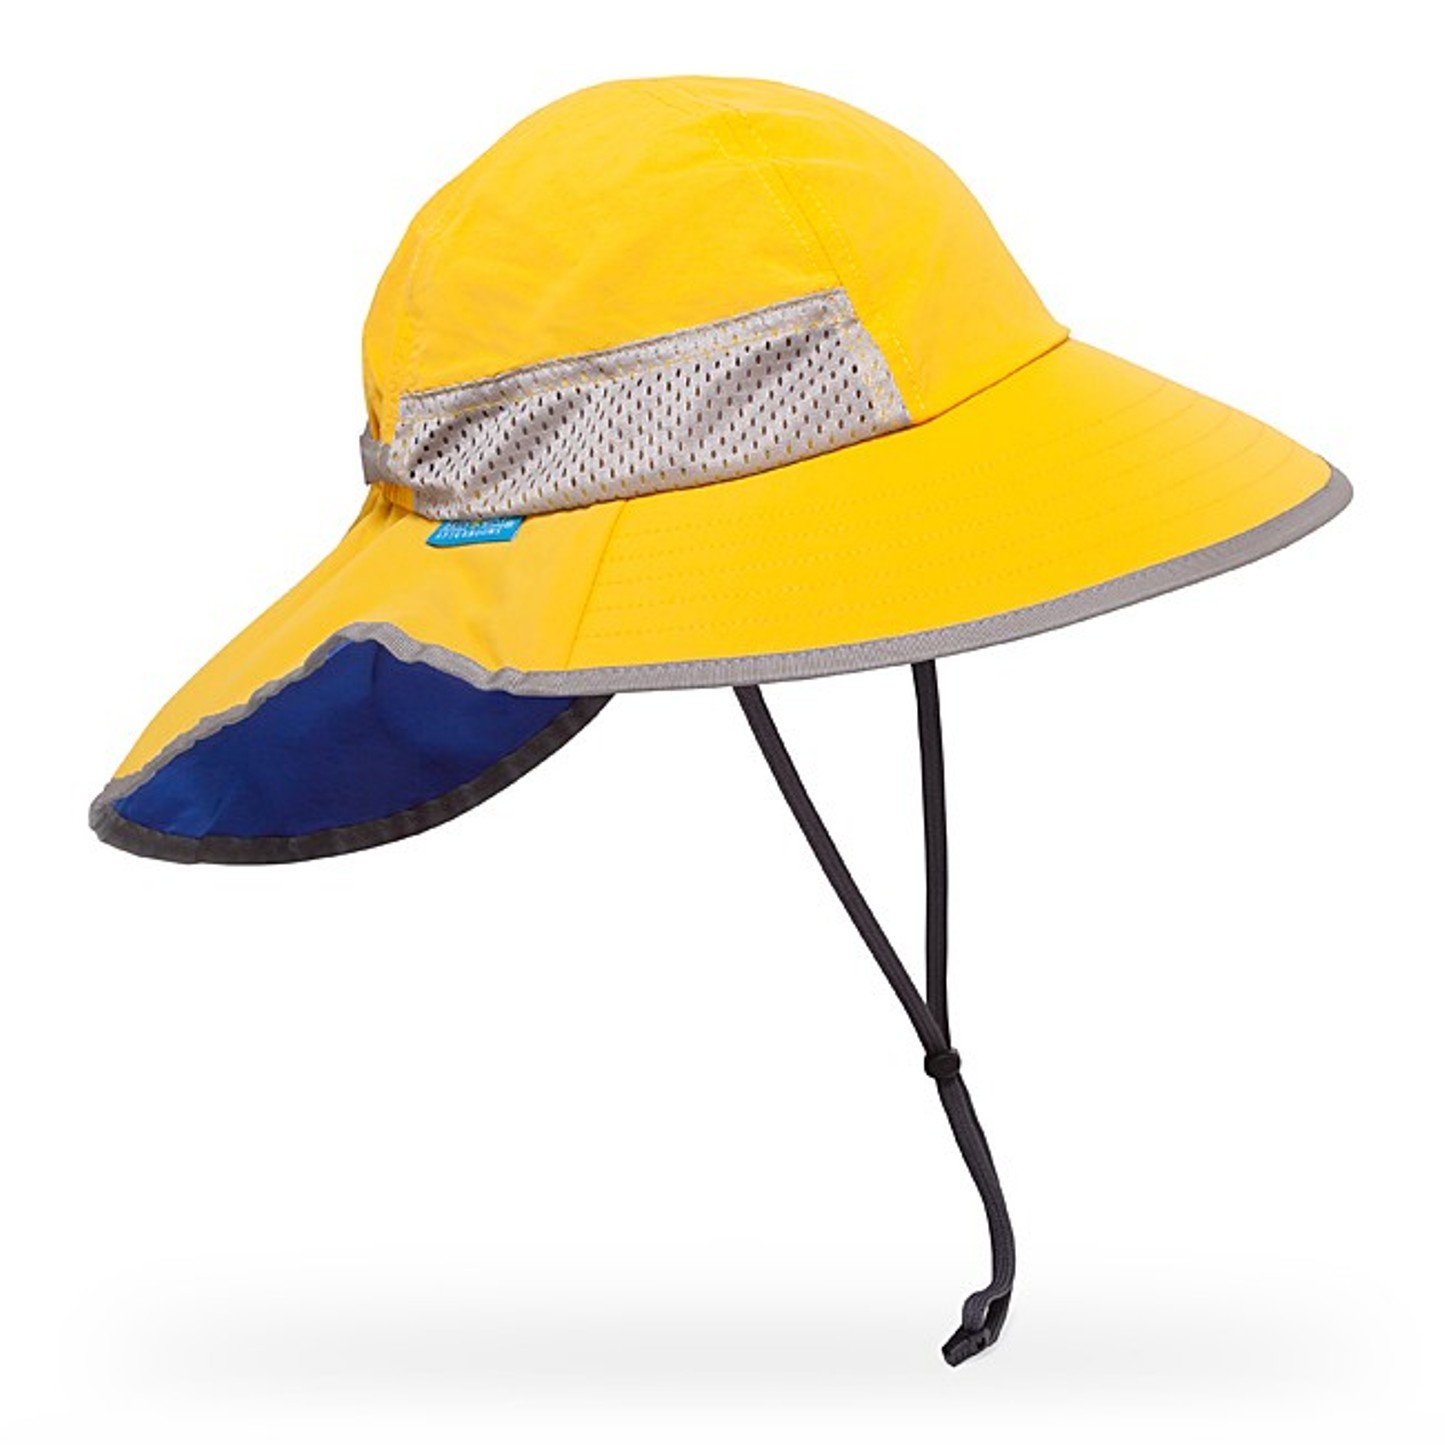 Floppy fun brim, cool colors and savvy sun protection all in one hat! Quick release chin strap with sliding lock holds our Chin Strap Hat in place. It's constructed from lightweight breathable cotton, so he'll stay cool under the sun.o every fiber.